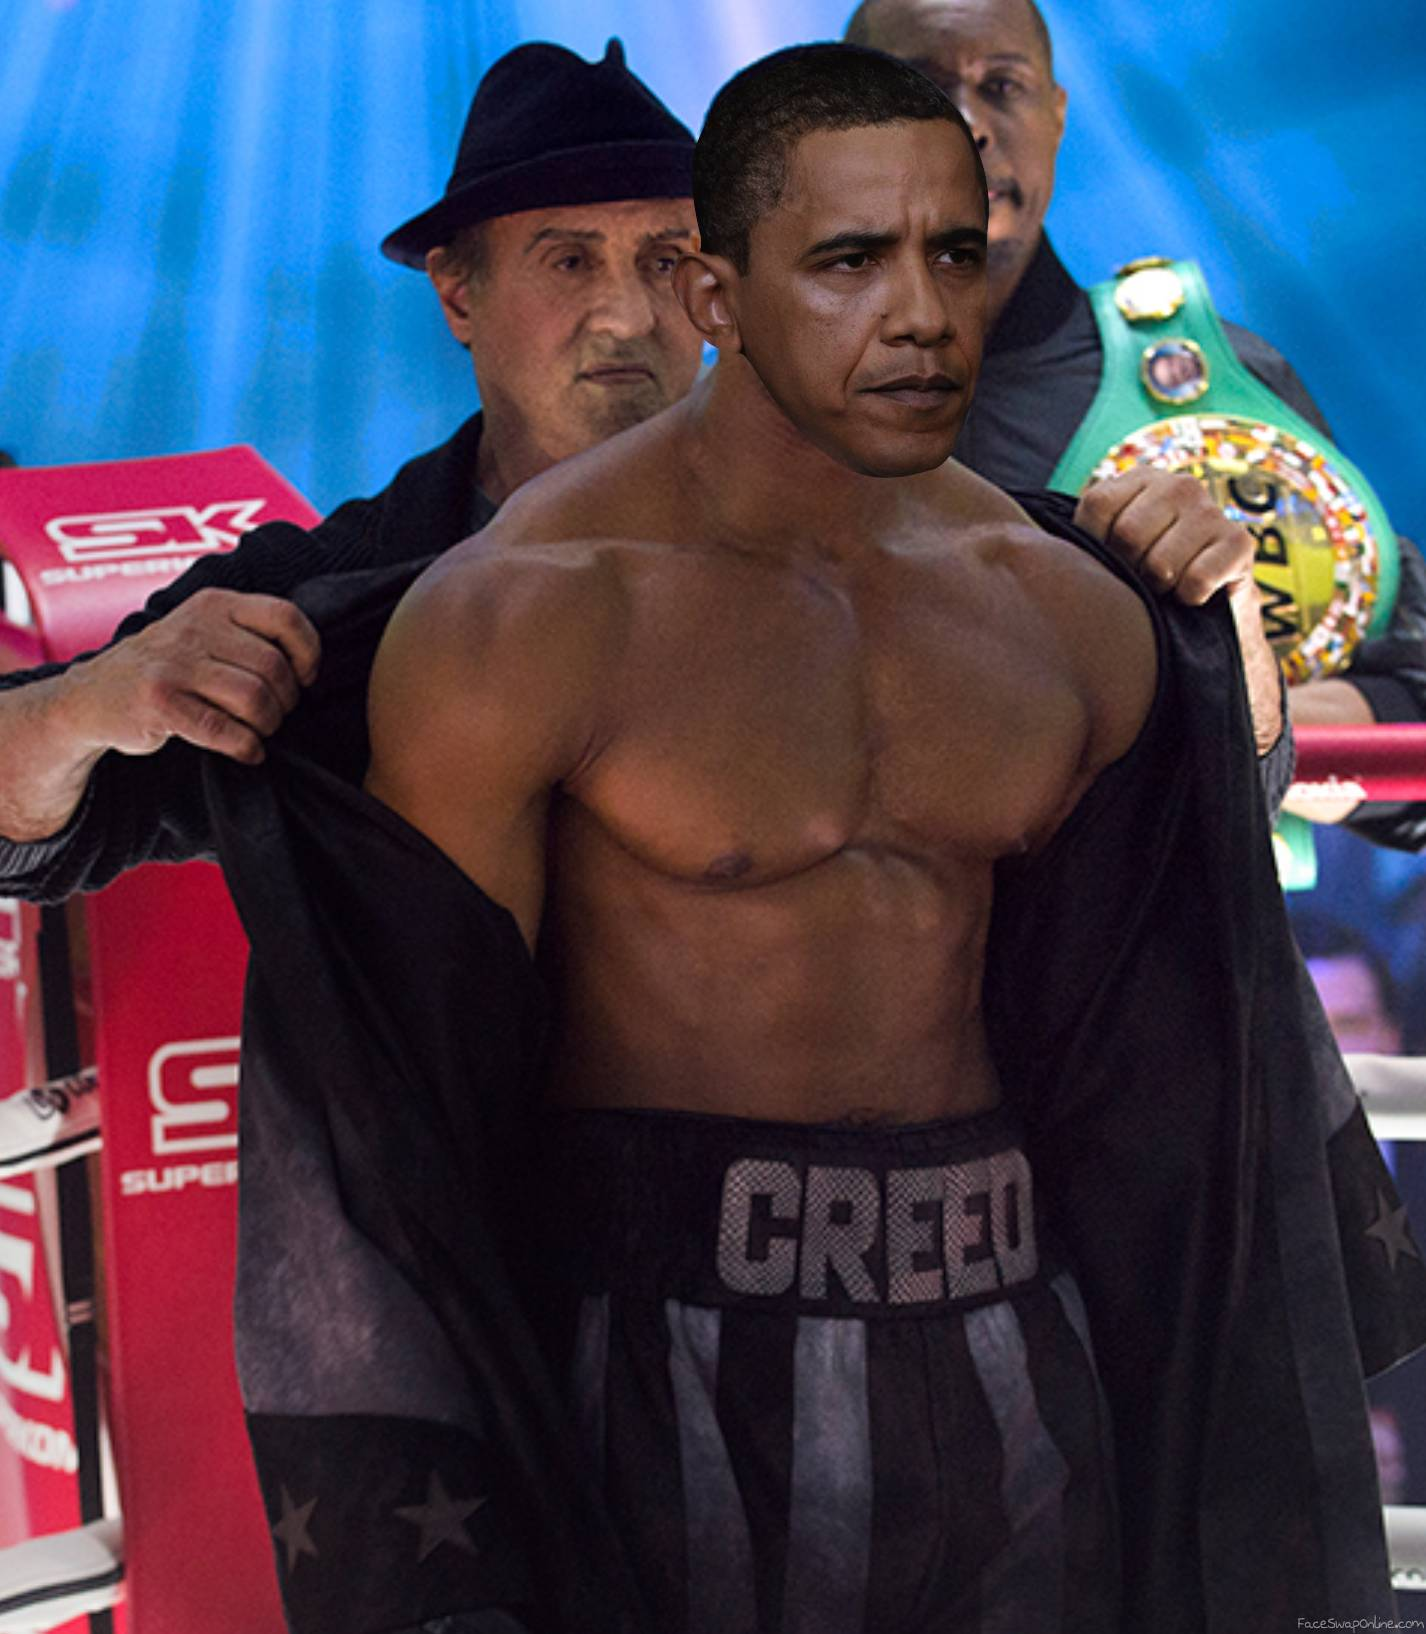 Obama Creed ready to rumble!